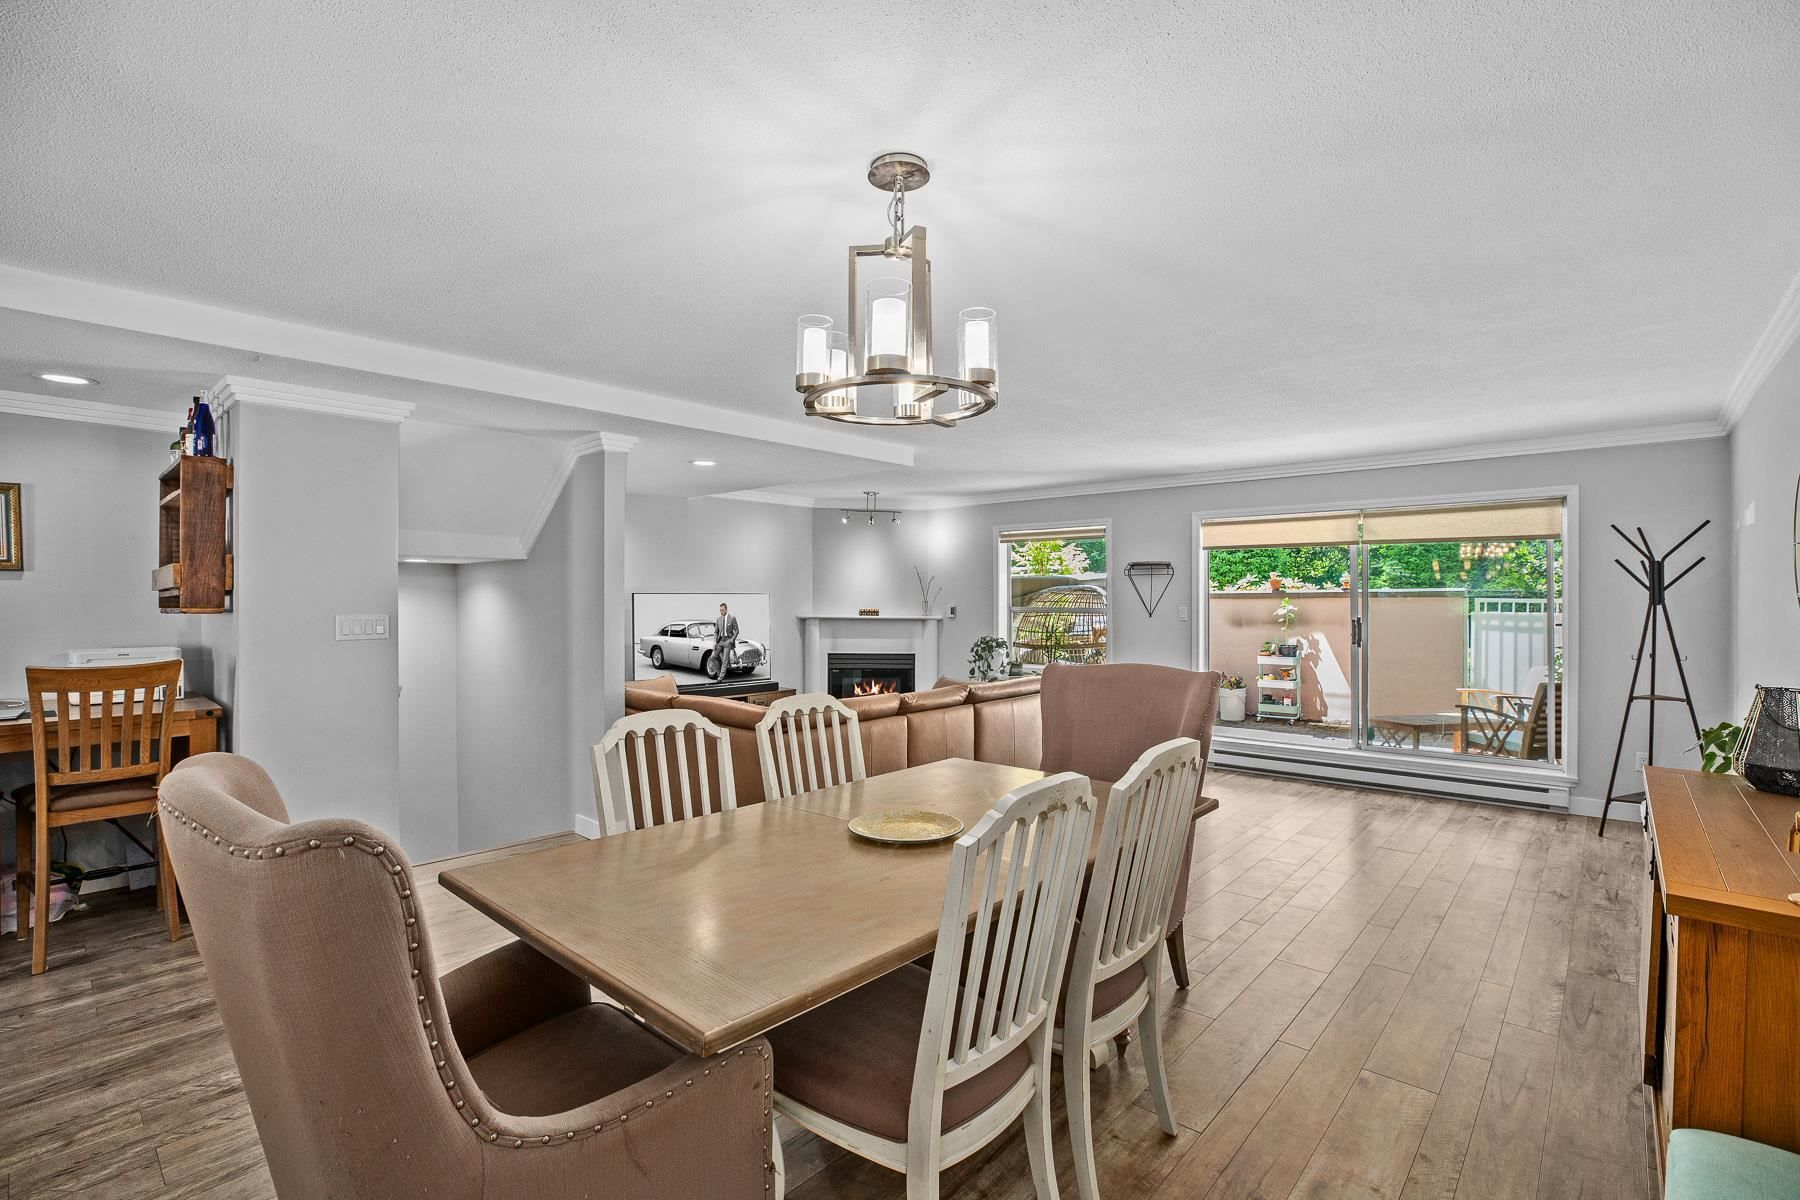 """Main Photo: 612 1500 OSTLER Court in North Vancouver: Indian River Townhouse for sale in """"MOUNTAIN TERRACE"""" : MLS®# R2601621"""